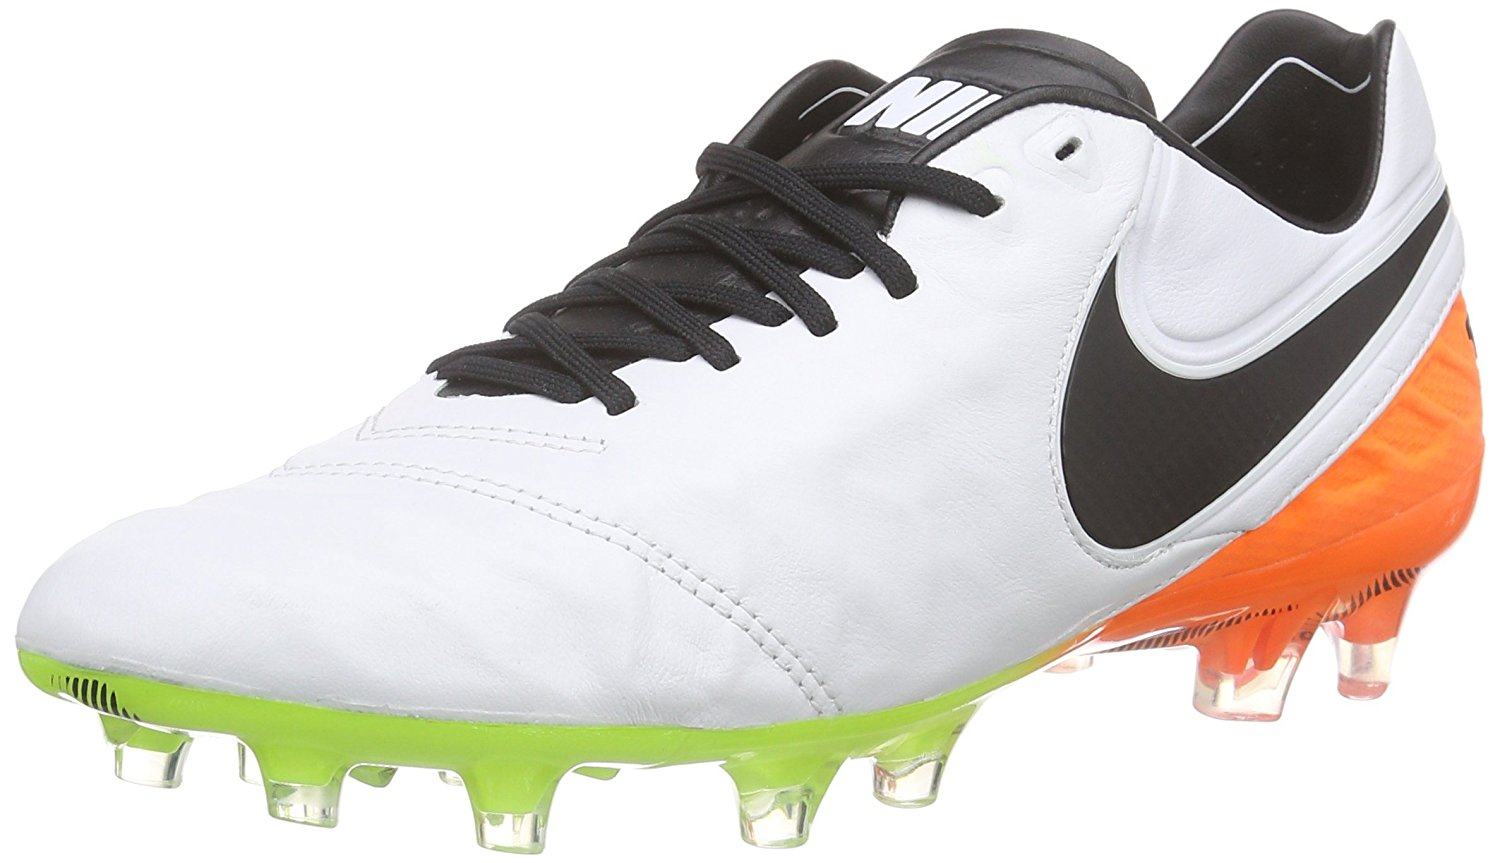 af03ad1d370 Get Quotations · Nike Tiempo Legend VI FG Men s Firm-Ground Soccer Cleat